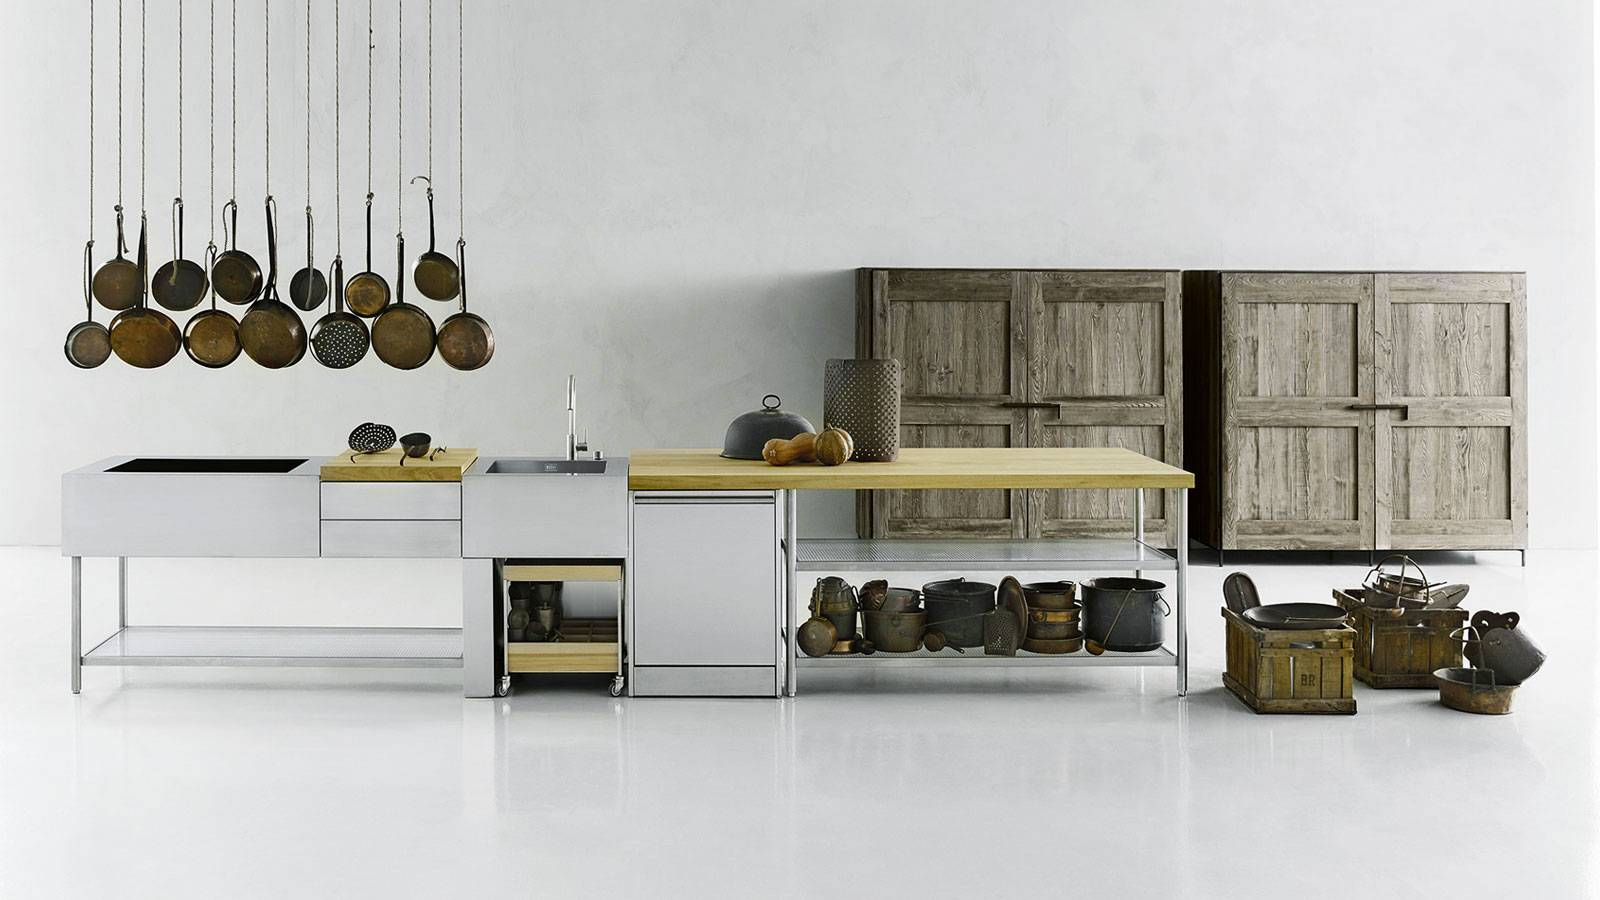 contemporary design kitchen by Piero Lissoni for Boffi